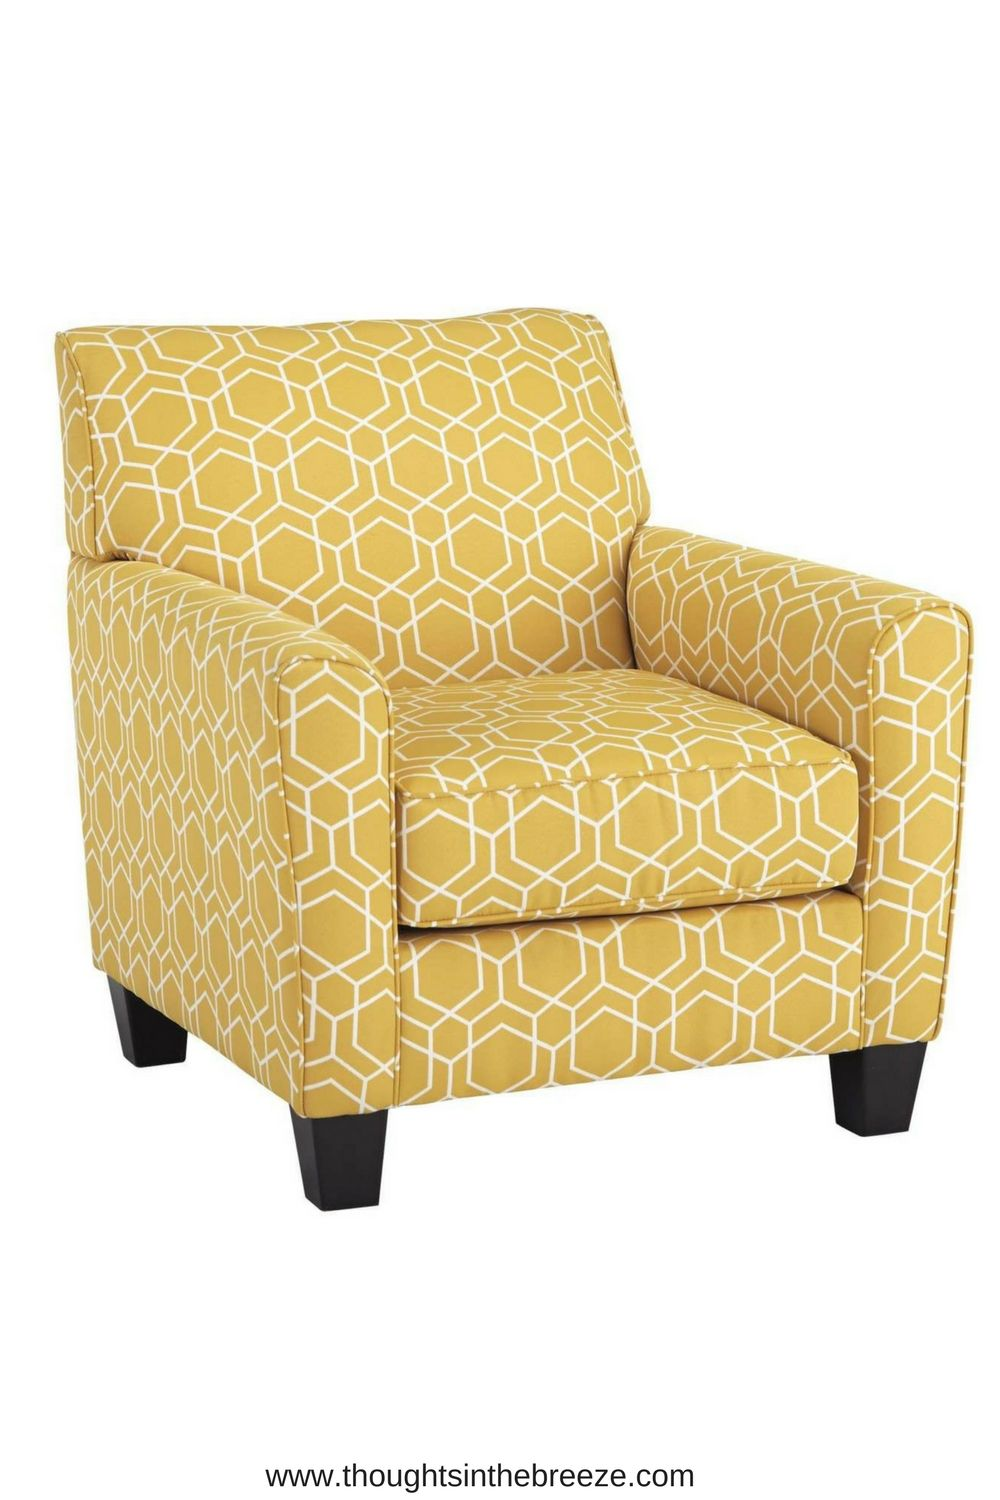 Brilliant 324 19 Benchcraft Ayanna Nuvella Gold Accent Chair Built Pabps2019 Chair Design Images Pabps2019Com